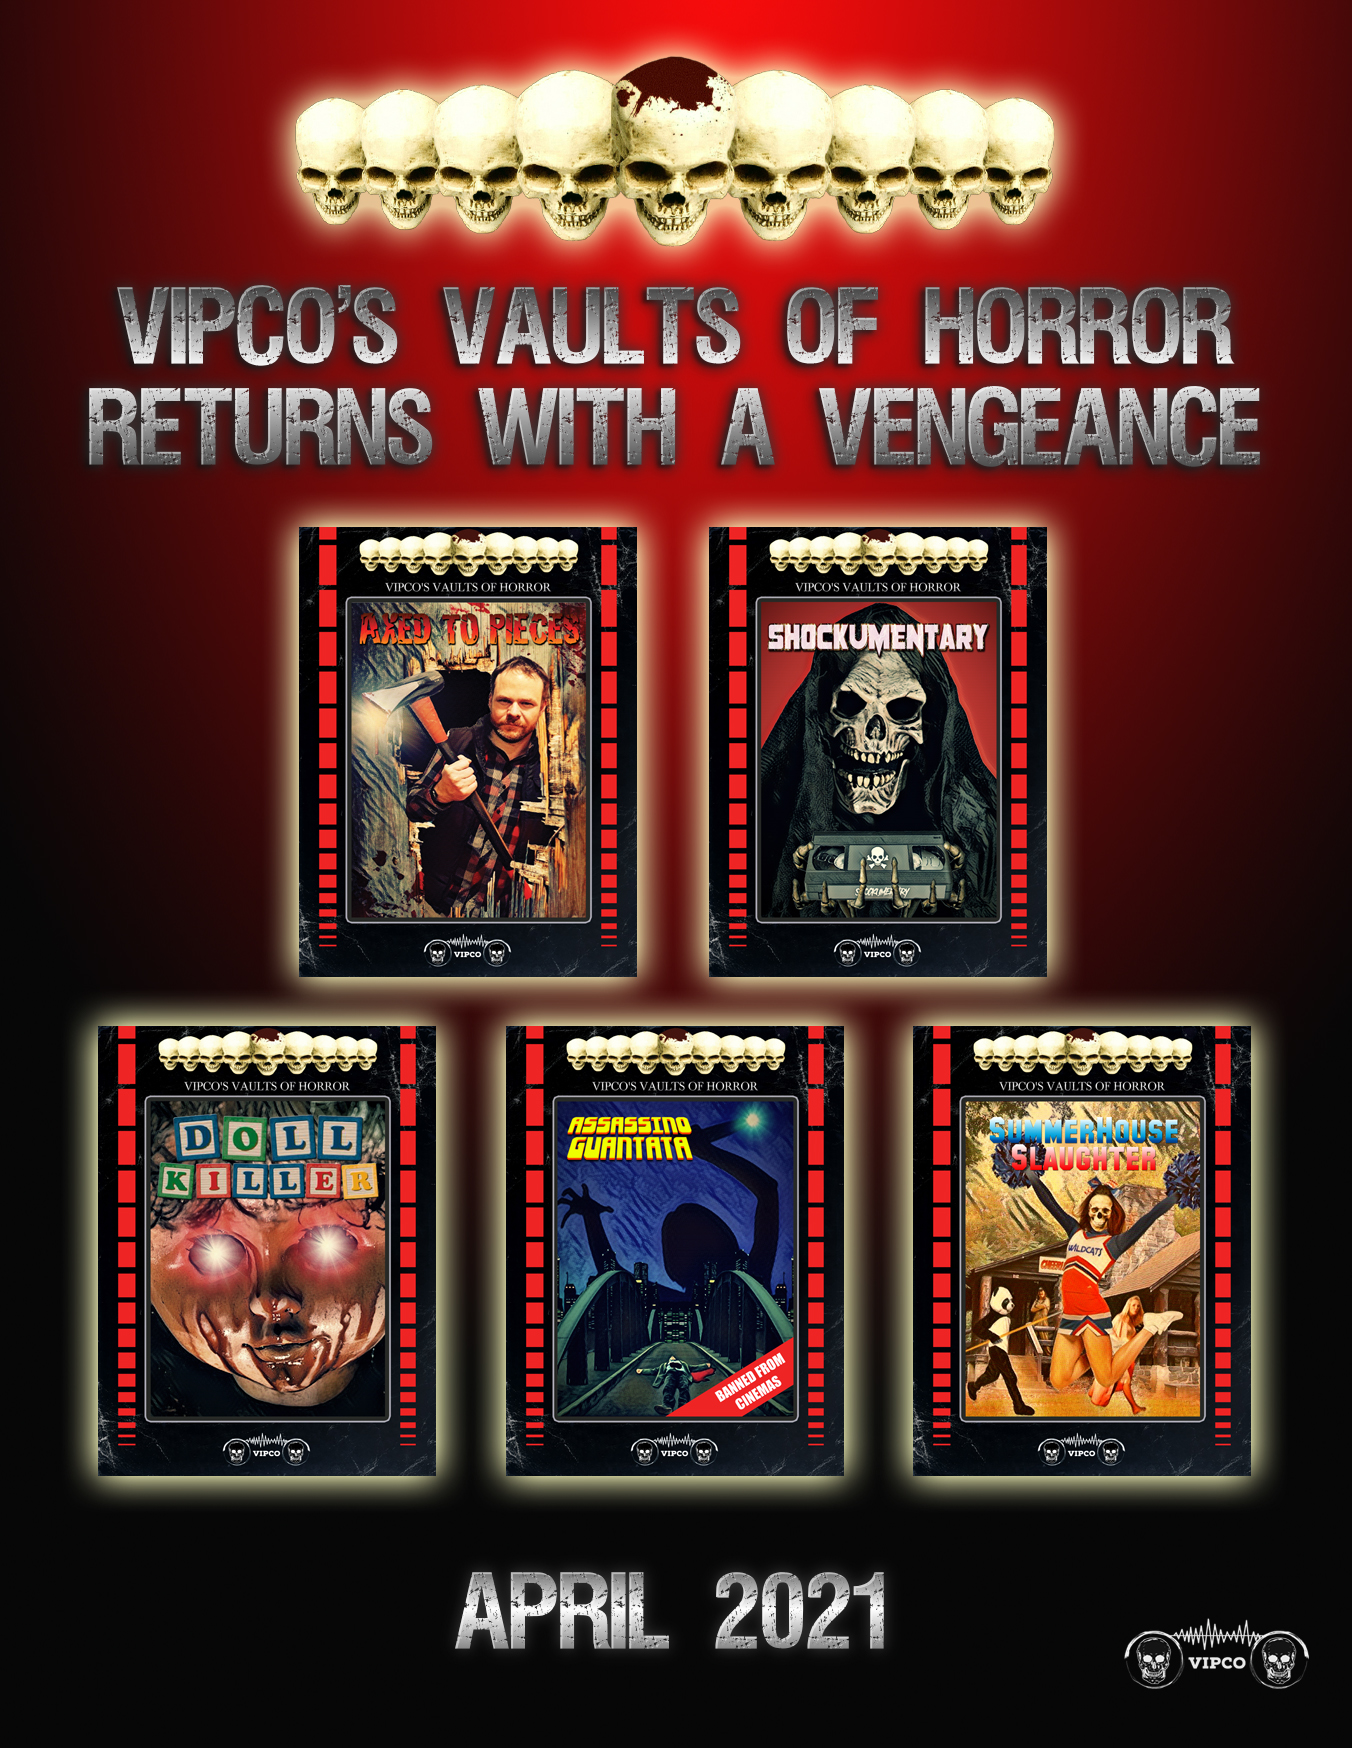 'Vipco's Vaults of Horror' returns this April with 5 all new titles